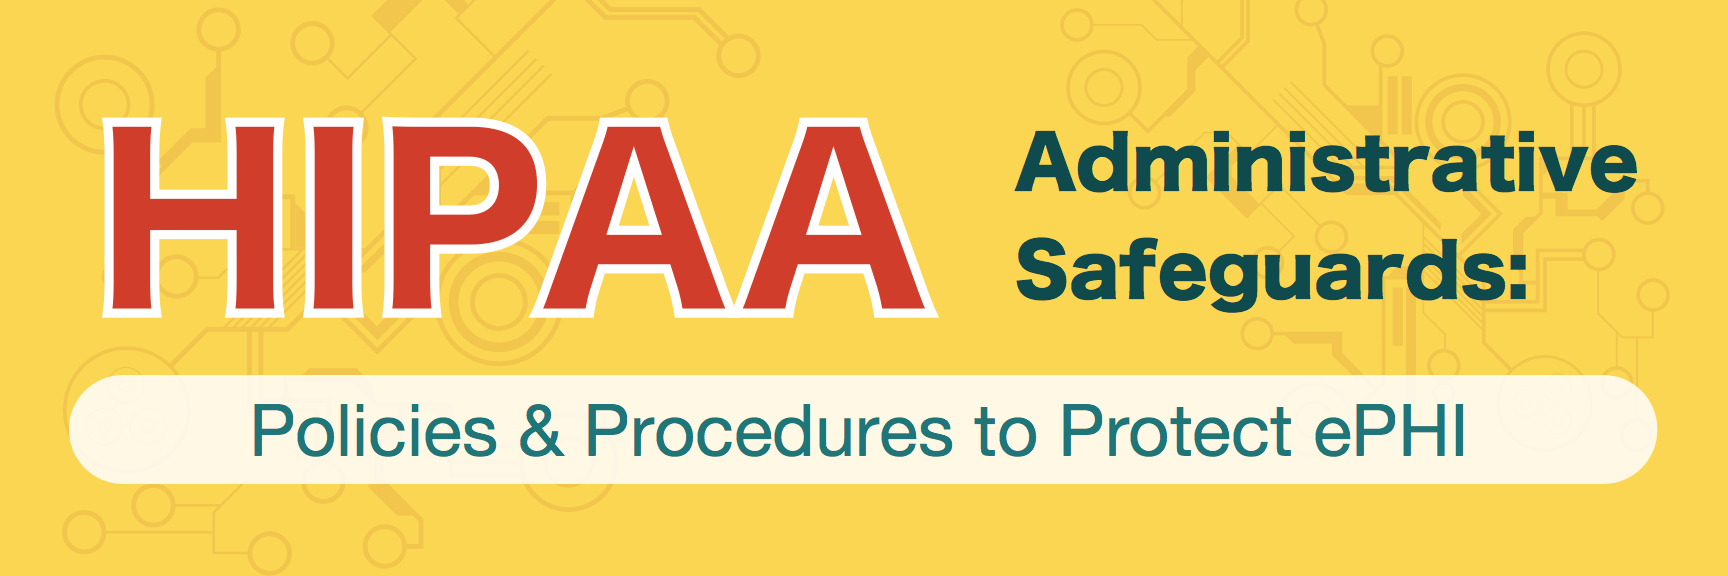 HIPAA security: Administrative safeguards